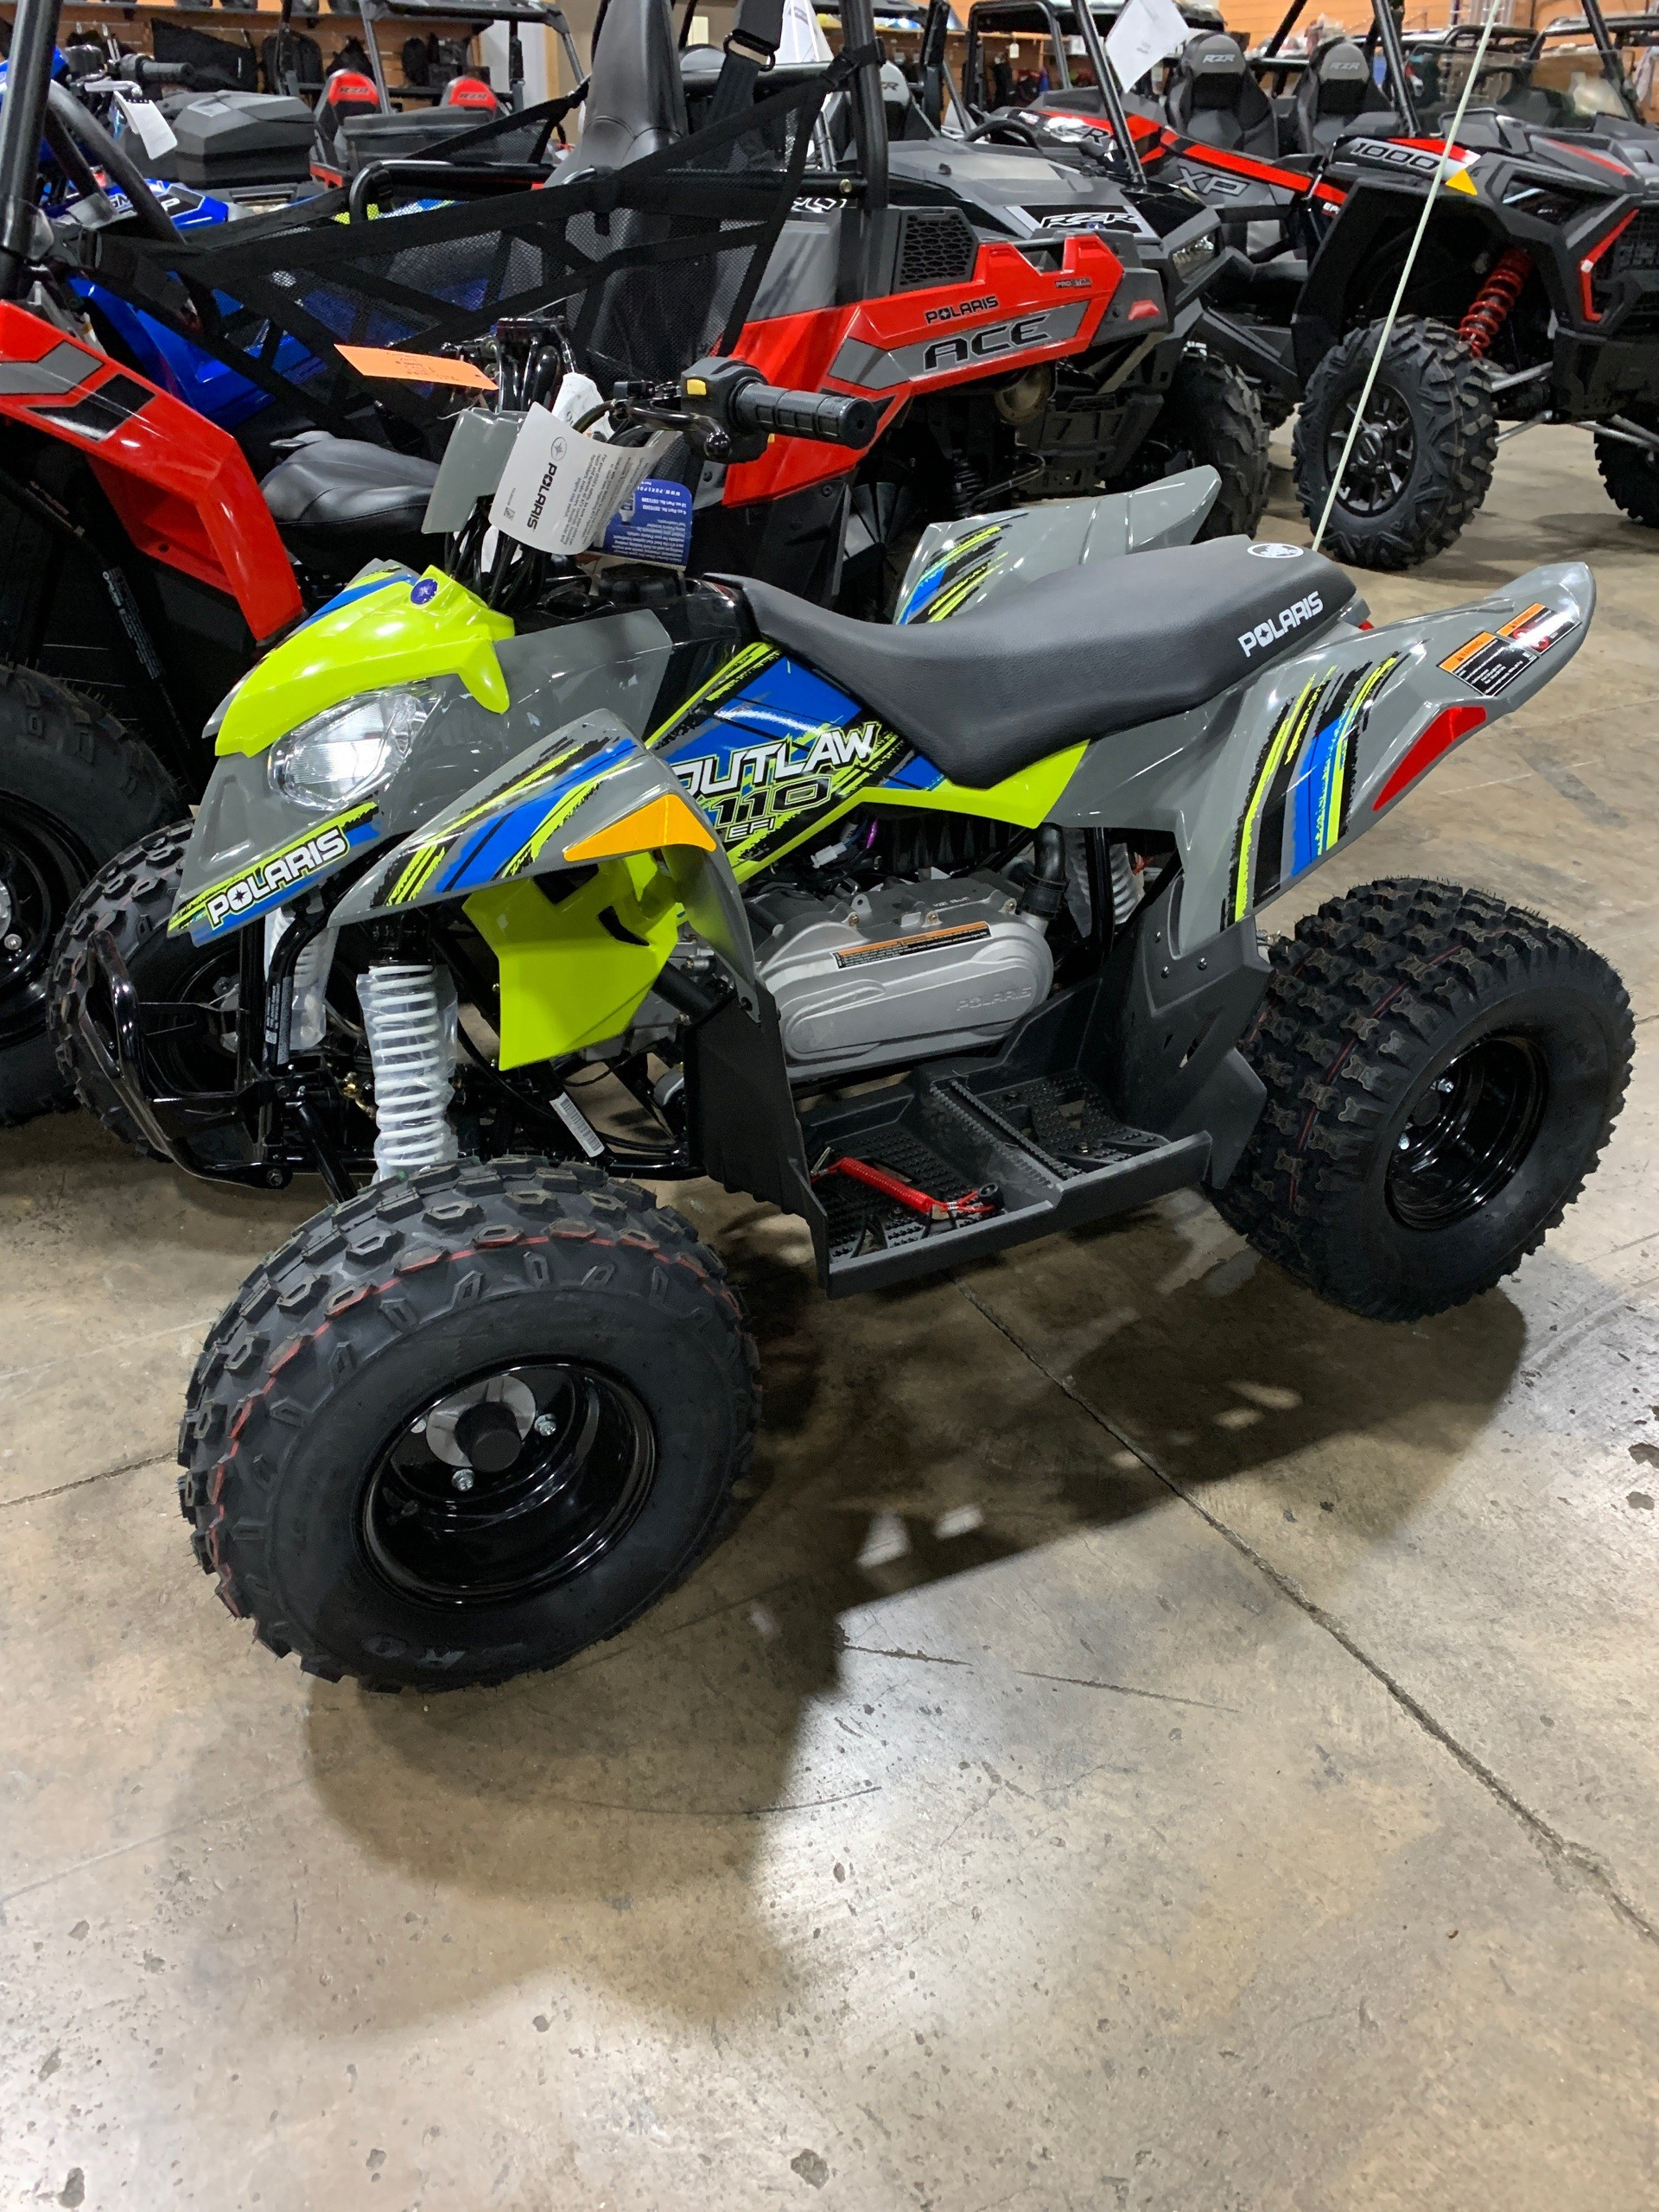 2019 Polaris Outlaw 110 in Woodstock, Illinois - Photo 1